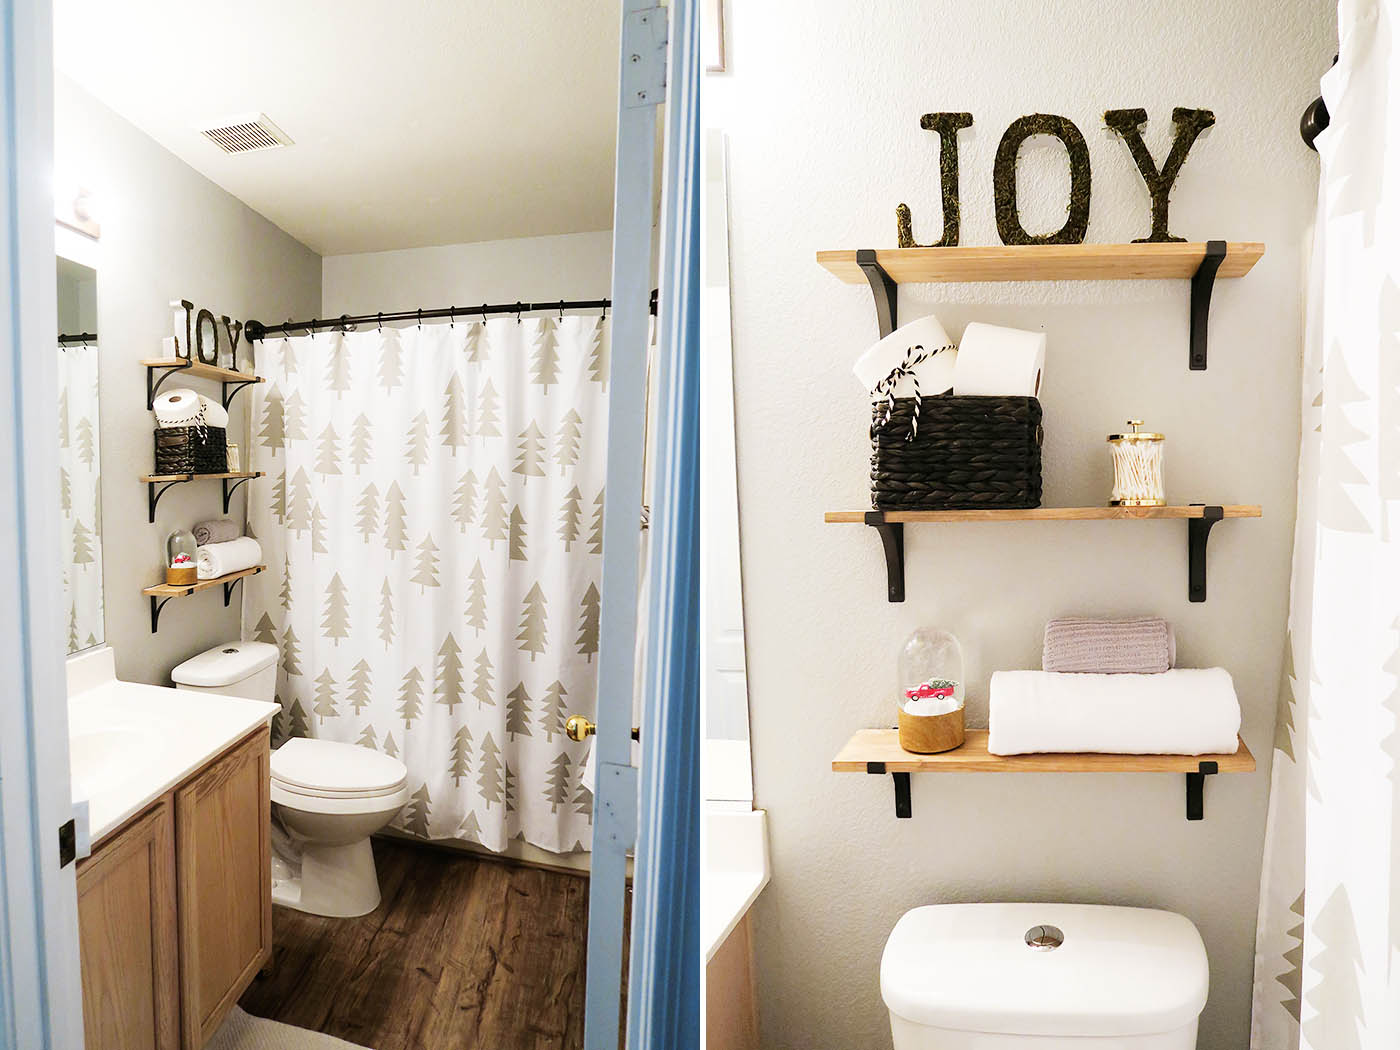 Holiday Guest Bathroom Decor - All for the Memories